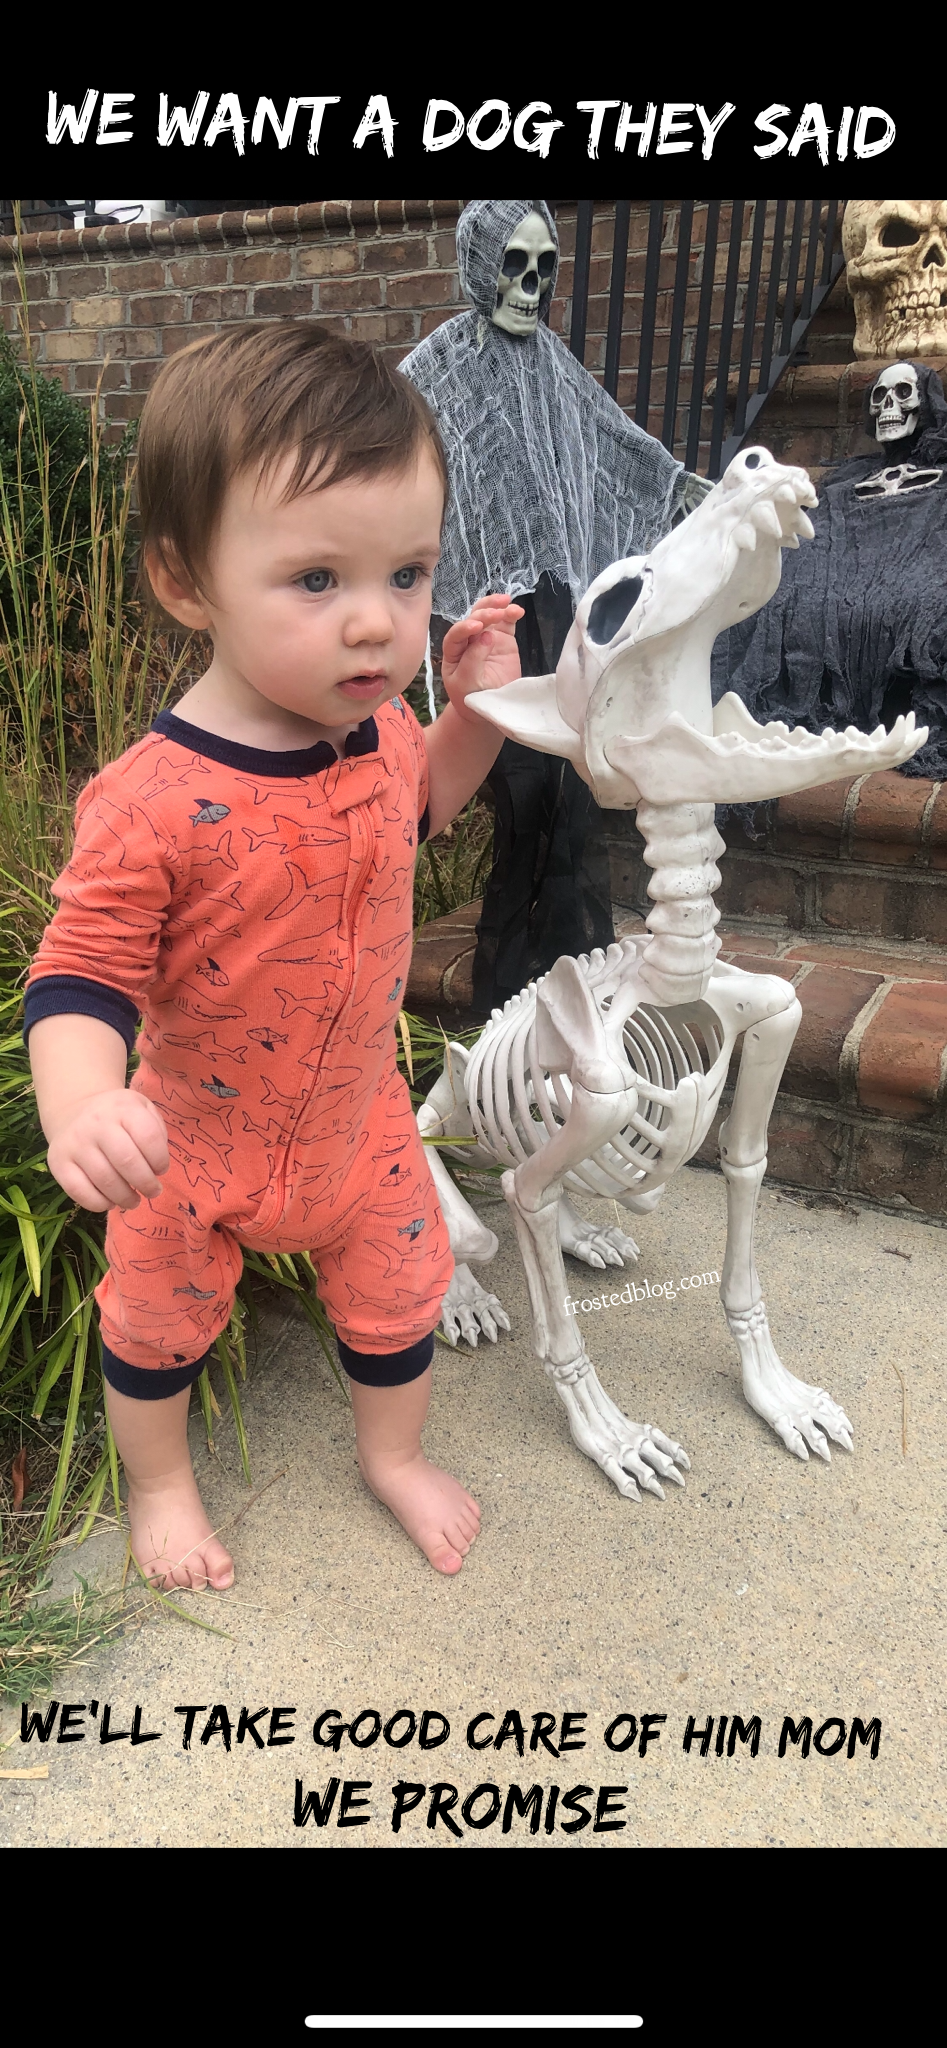 Halloween Memes Funny Dog Skeleton and Baby via Misty Nelson Frosted Blog Halloween Decorations